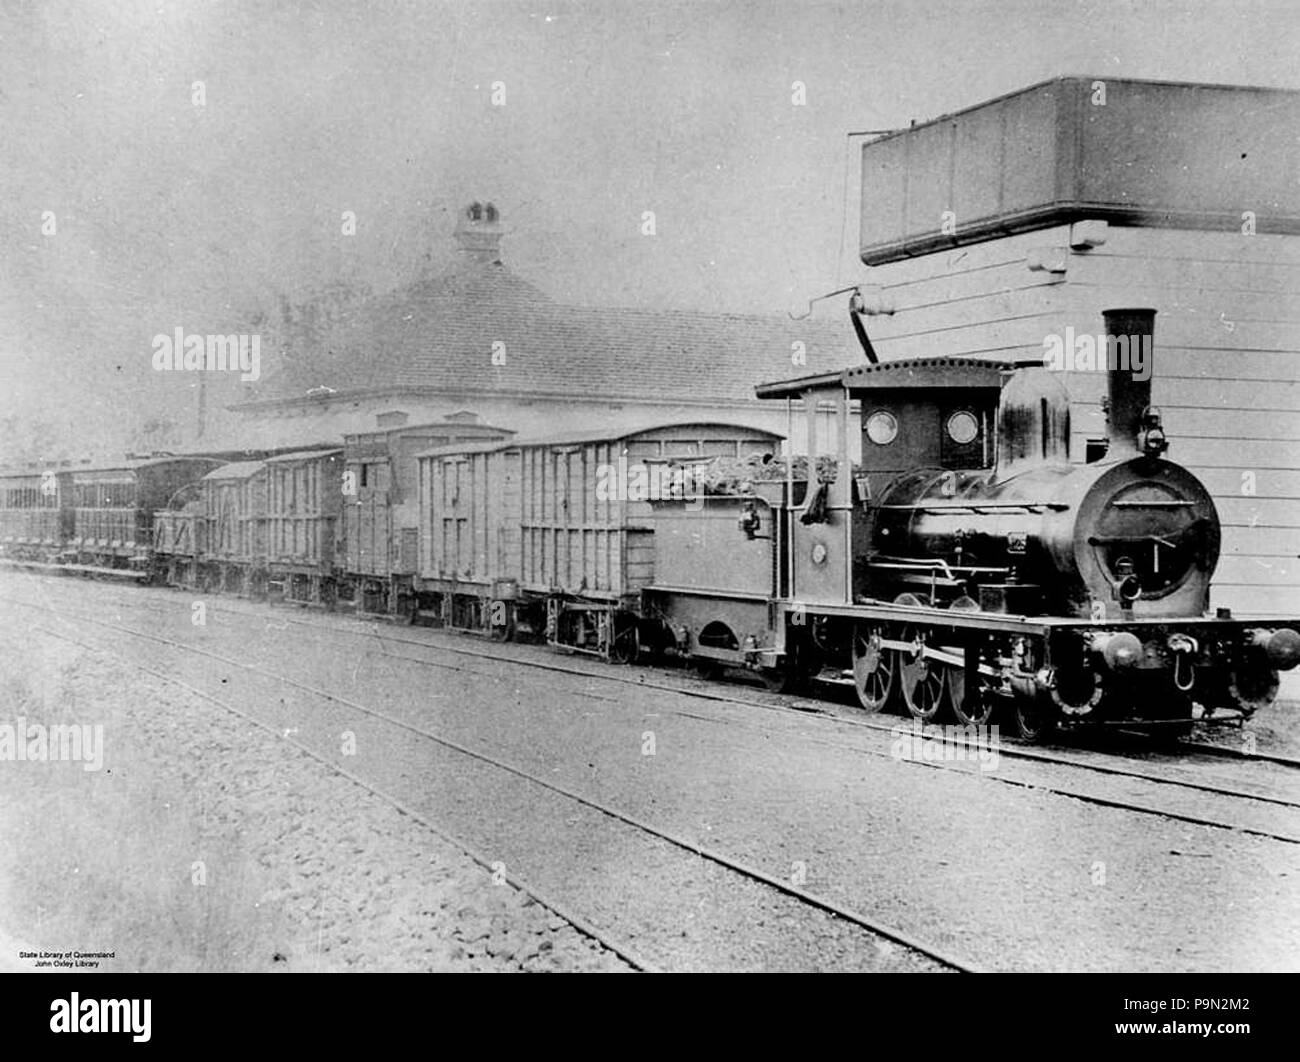 Queensland Train Black and White Stock Photos & Images - Alamy